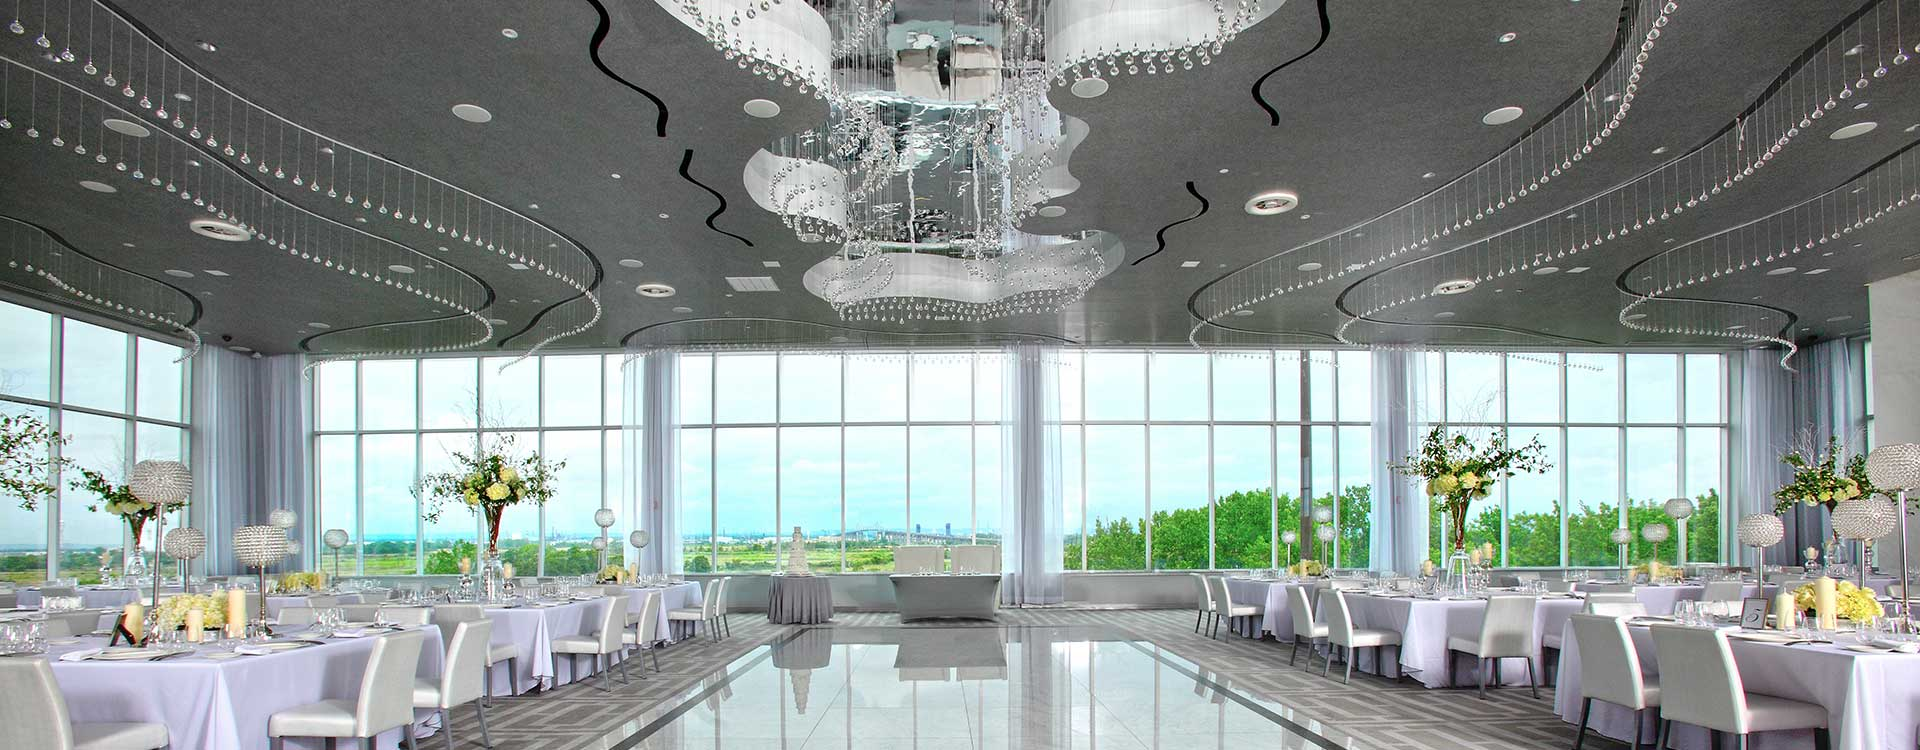 Amazing Glass Ball Ceiling Lighting In The Hilton Staten